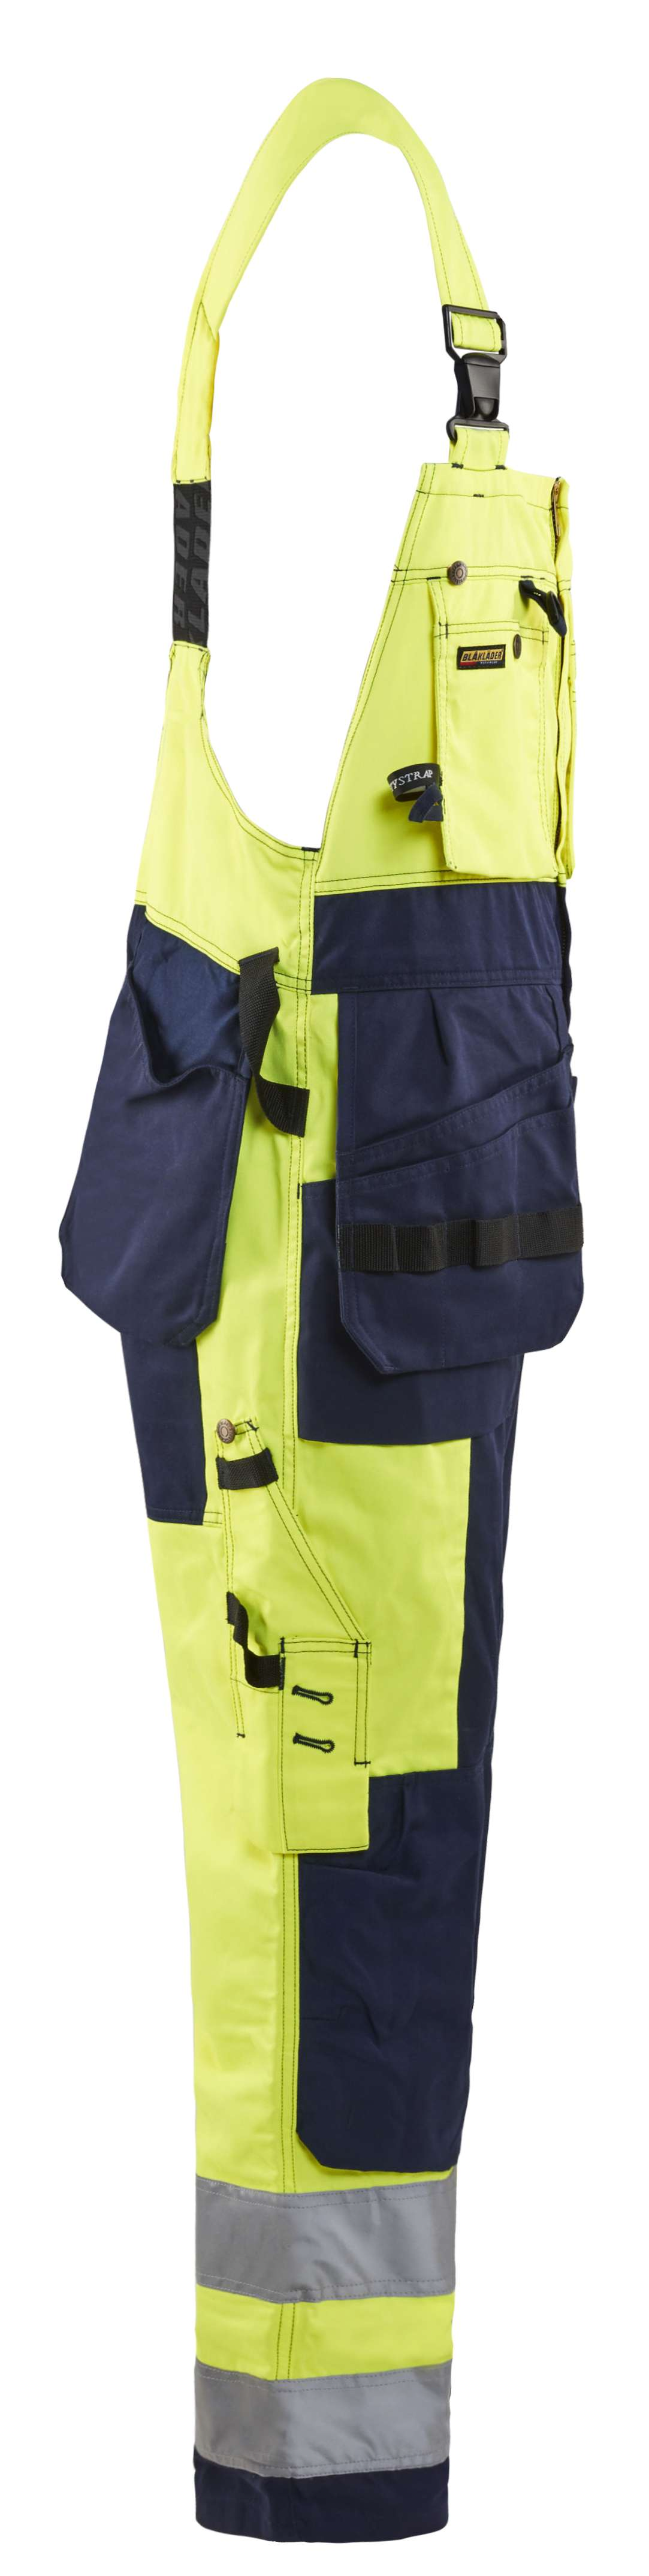 Blaklader Am. Overalls 26031860 High Vis geel-marineblauw(3389)